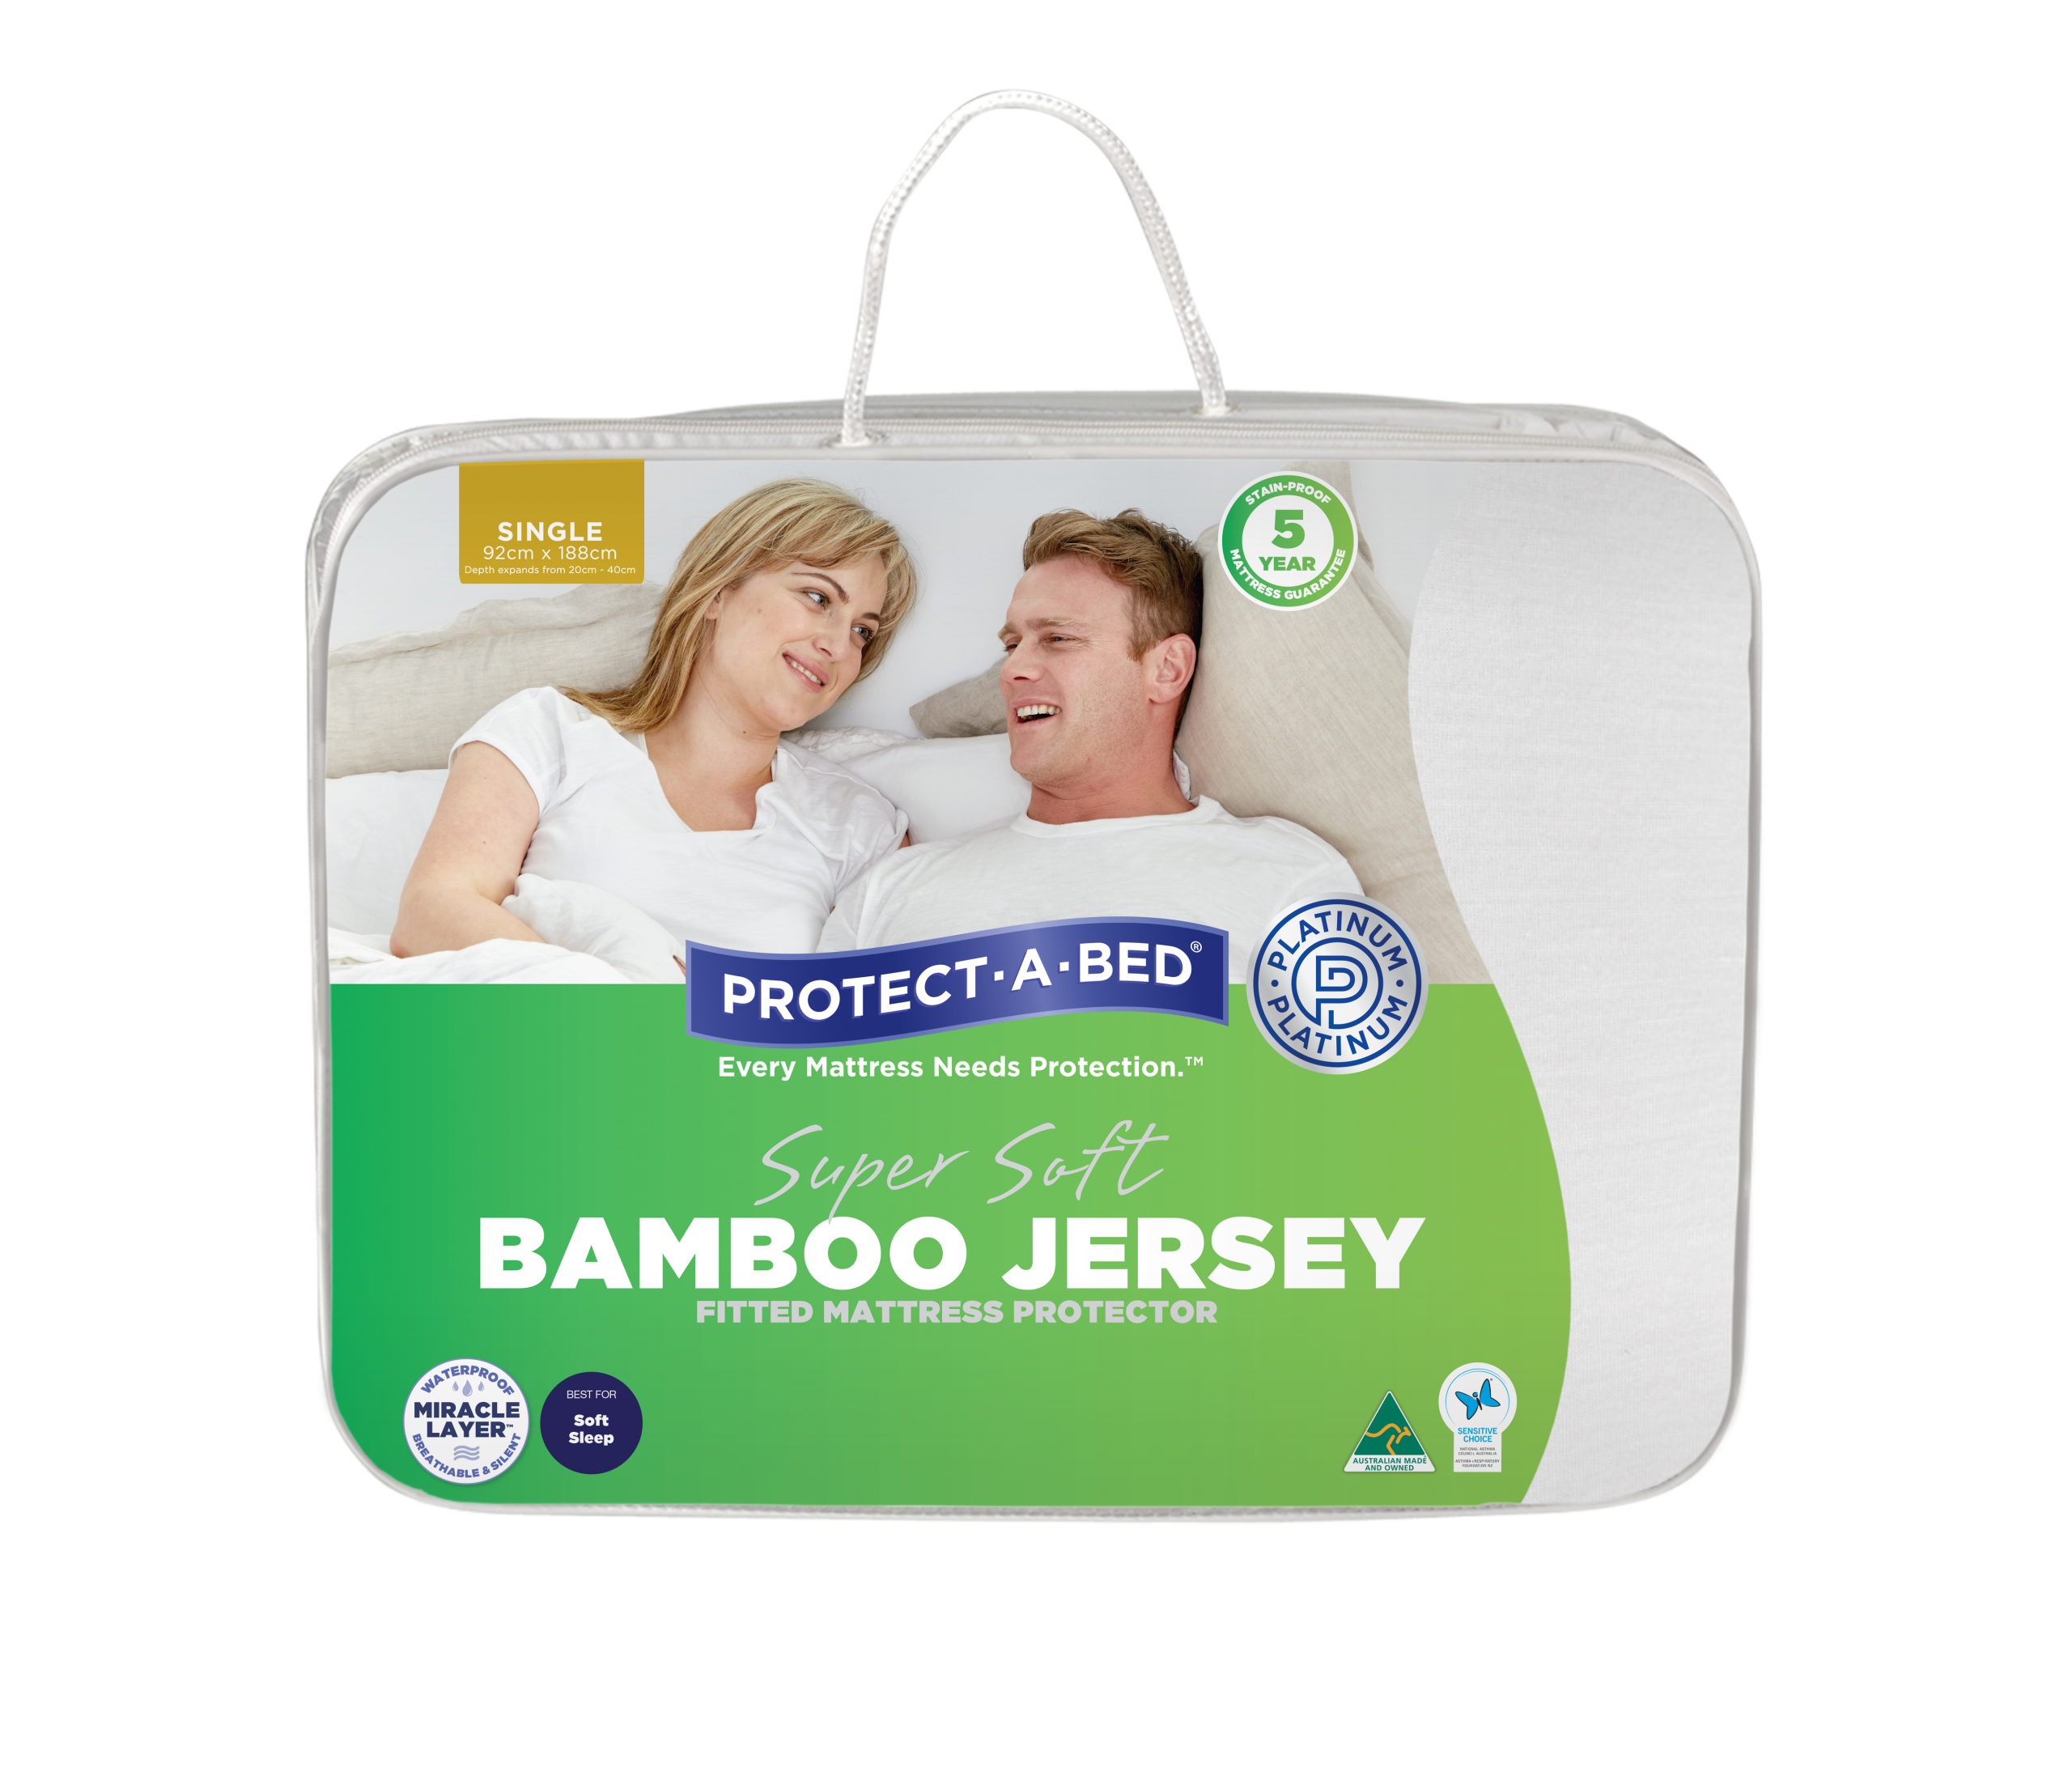 Bamboo Jersey Fitted Mattress Protector